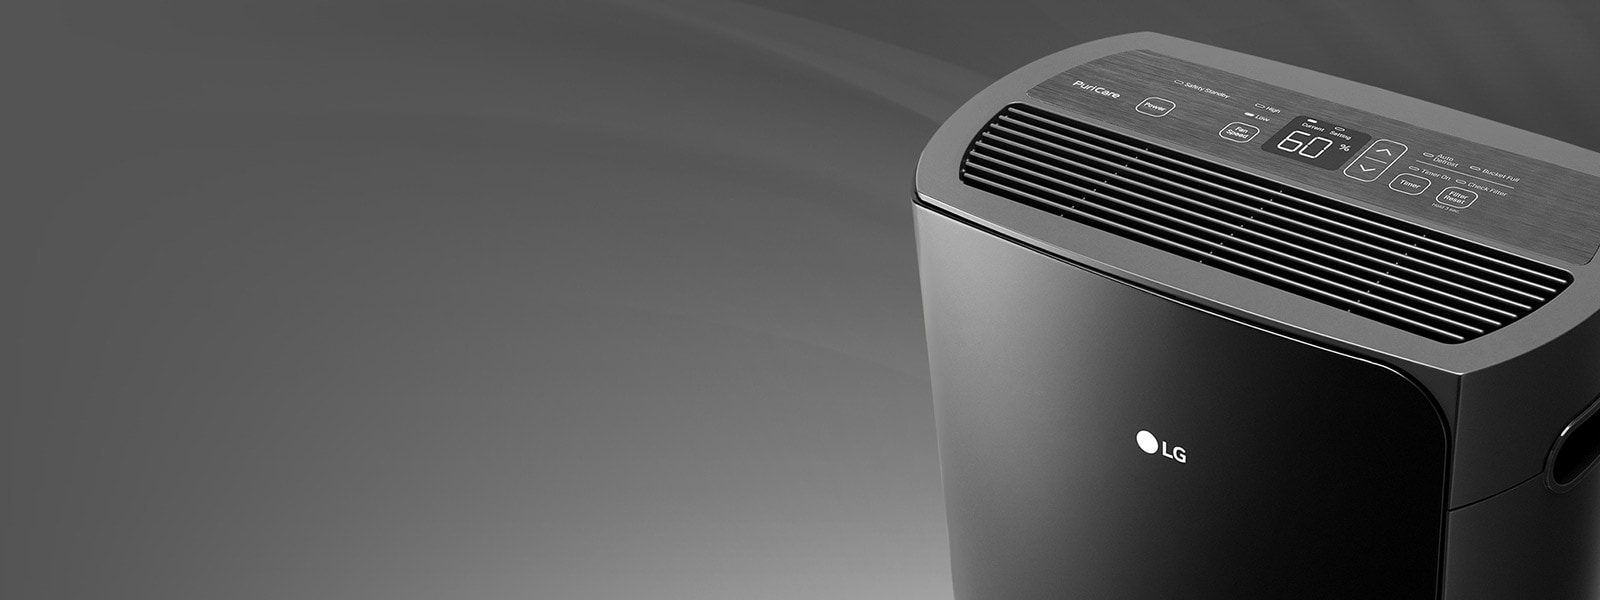 LG Dehumidifiers: Energy Efficient with Intelligent Features